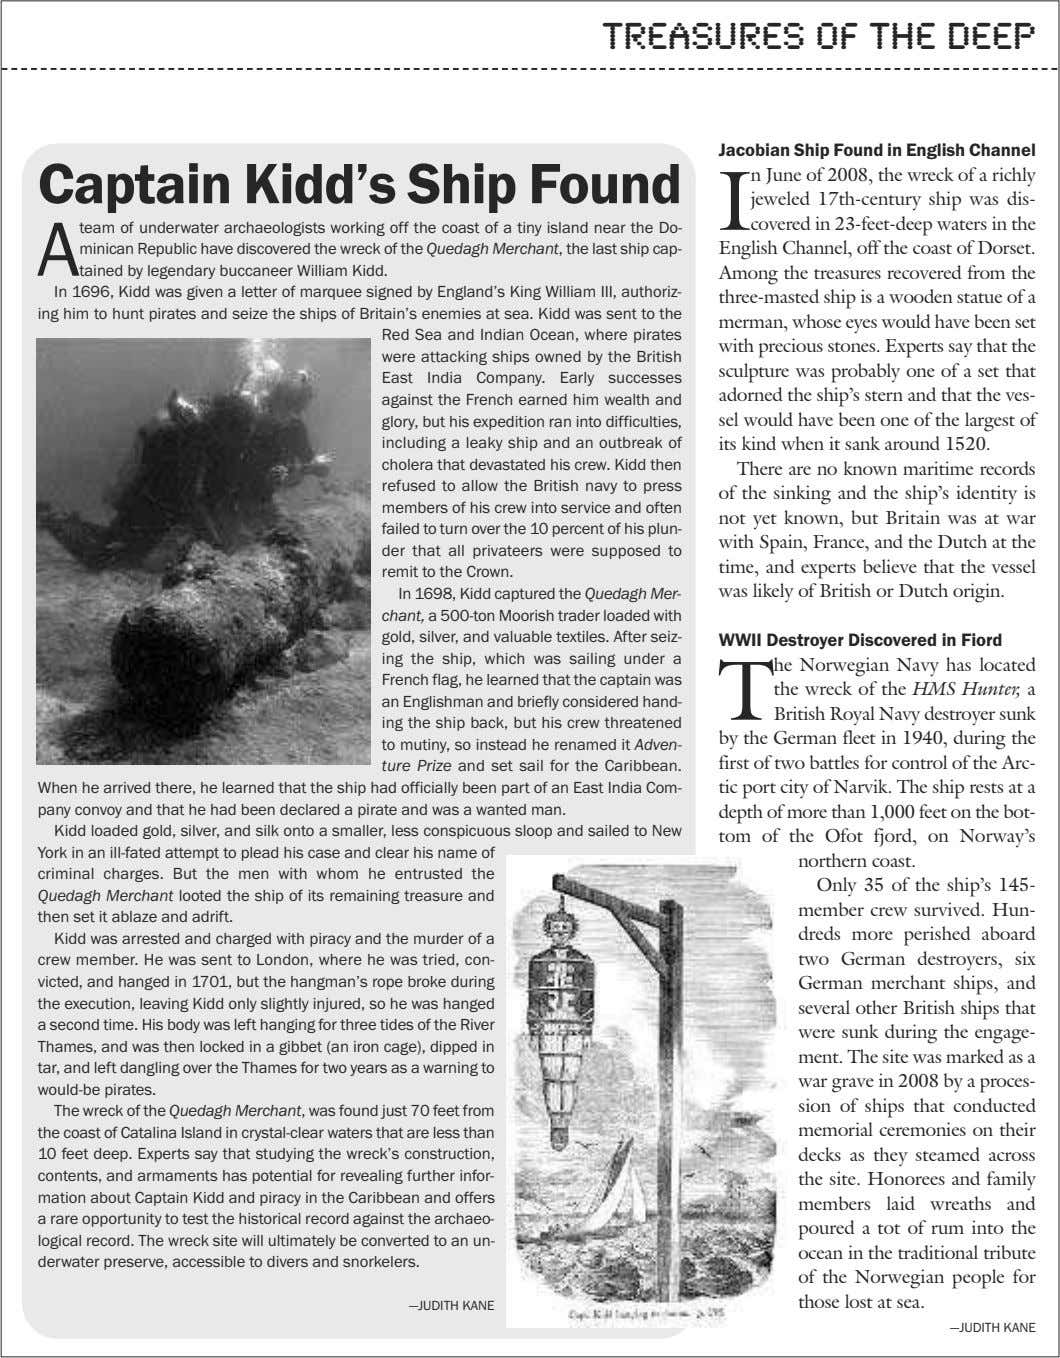 treasures of the deep Jacobian Ship Found in English Channel Captain Kidd's Ship Found I